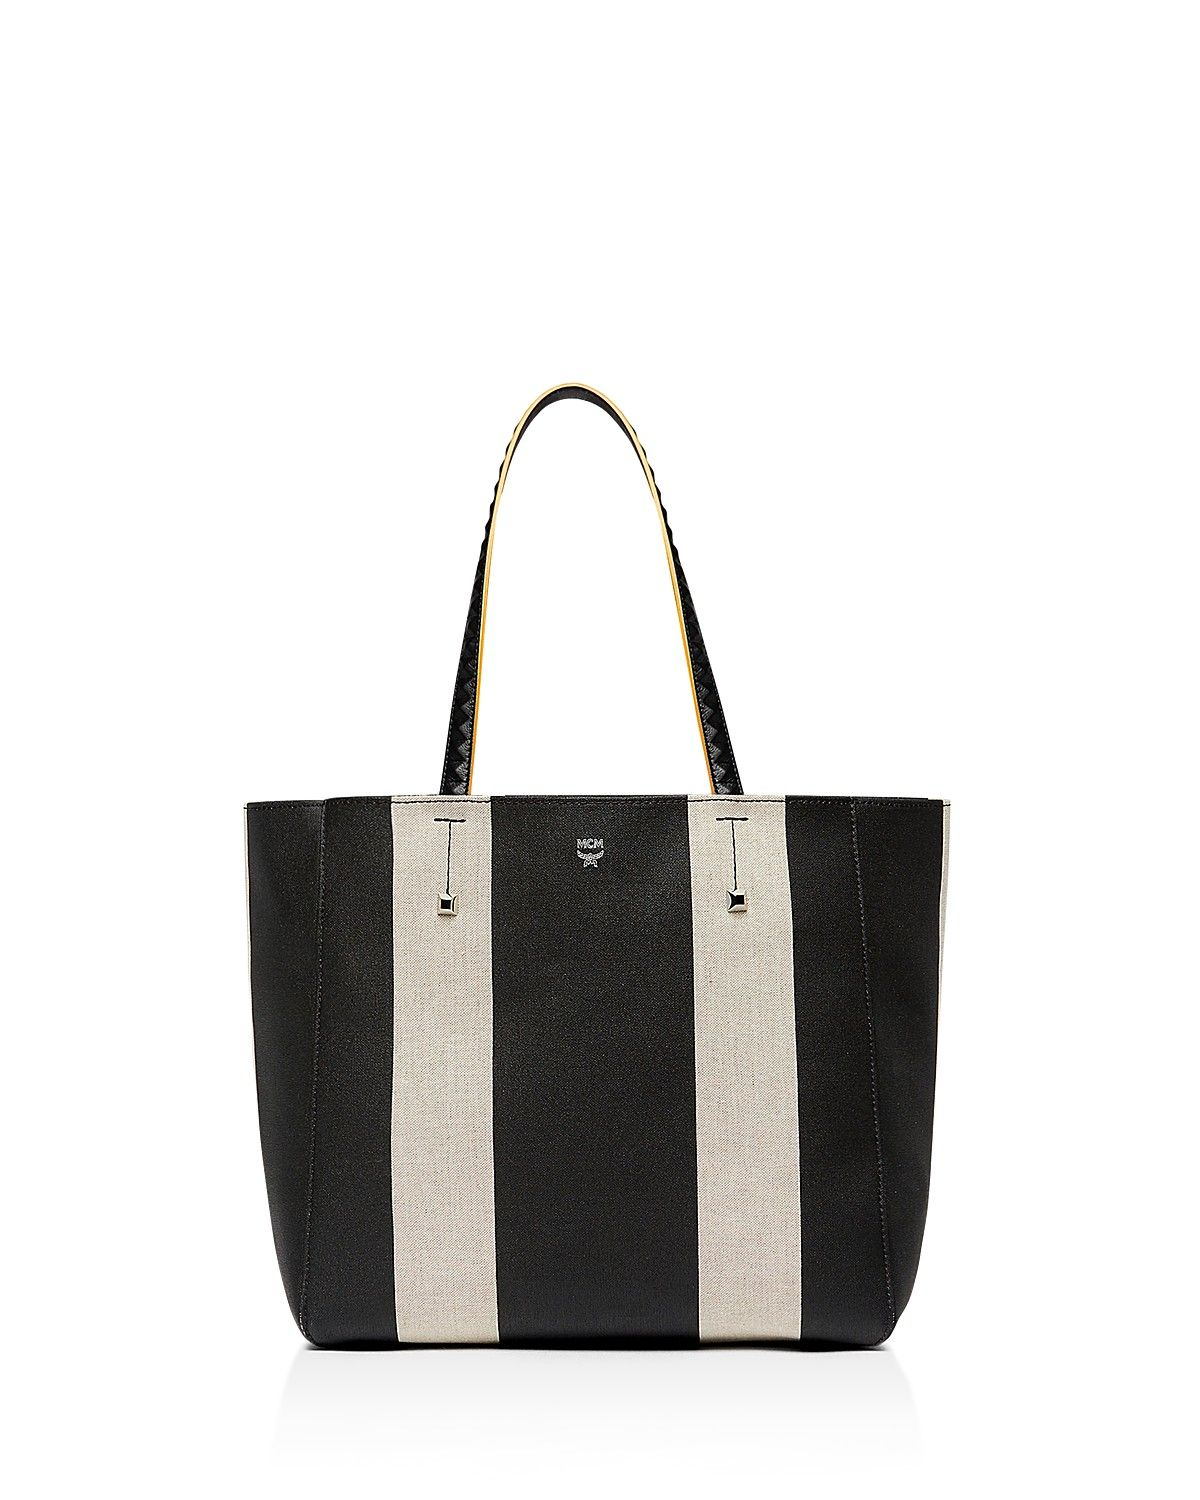 Mcm Leather Co Was Founded In 1976 These German Made Bags Are Of Exception Quality Bloomingdales Bag